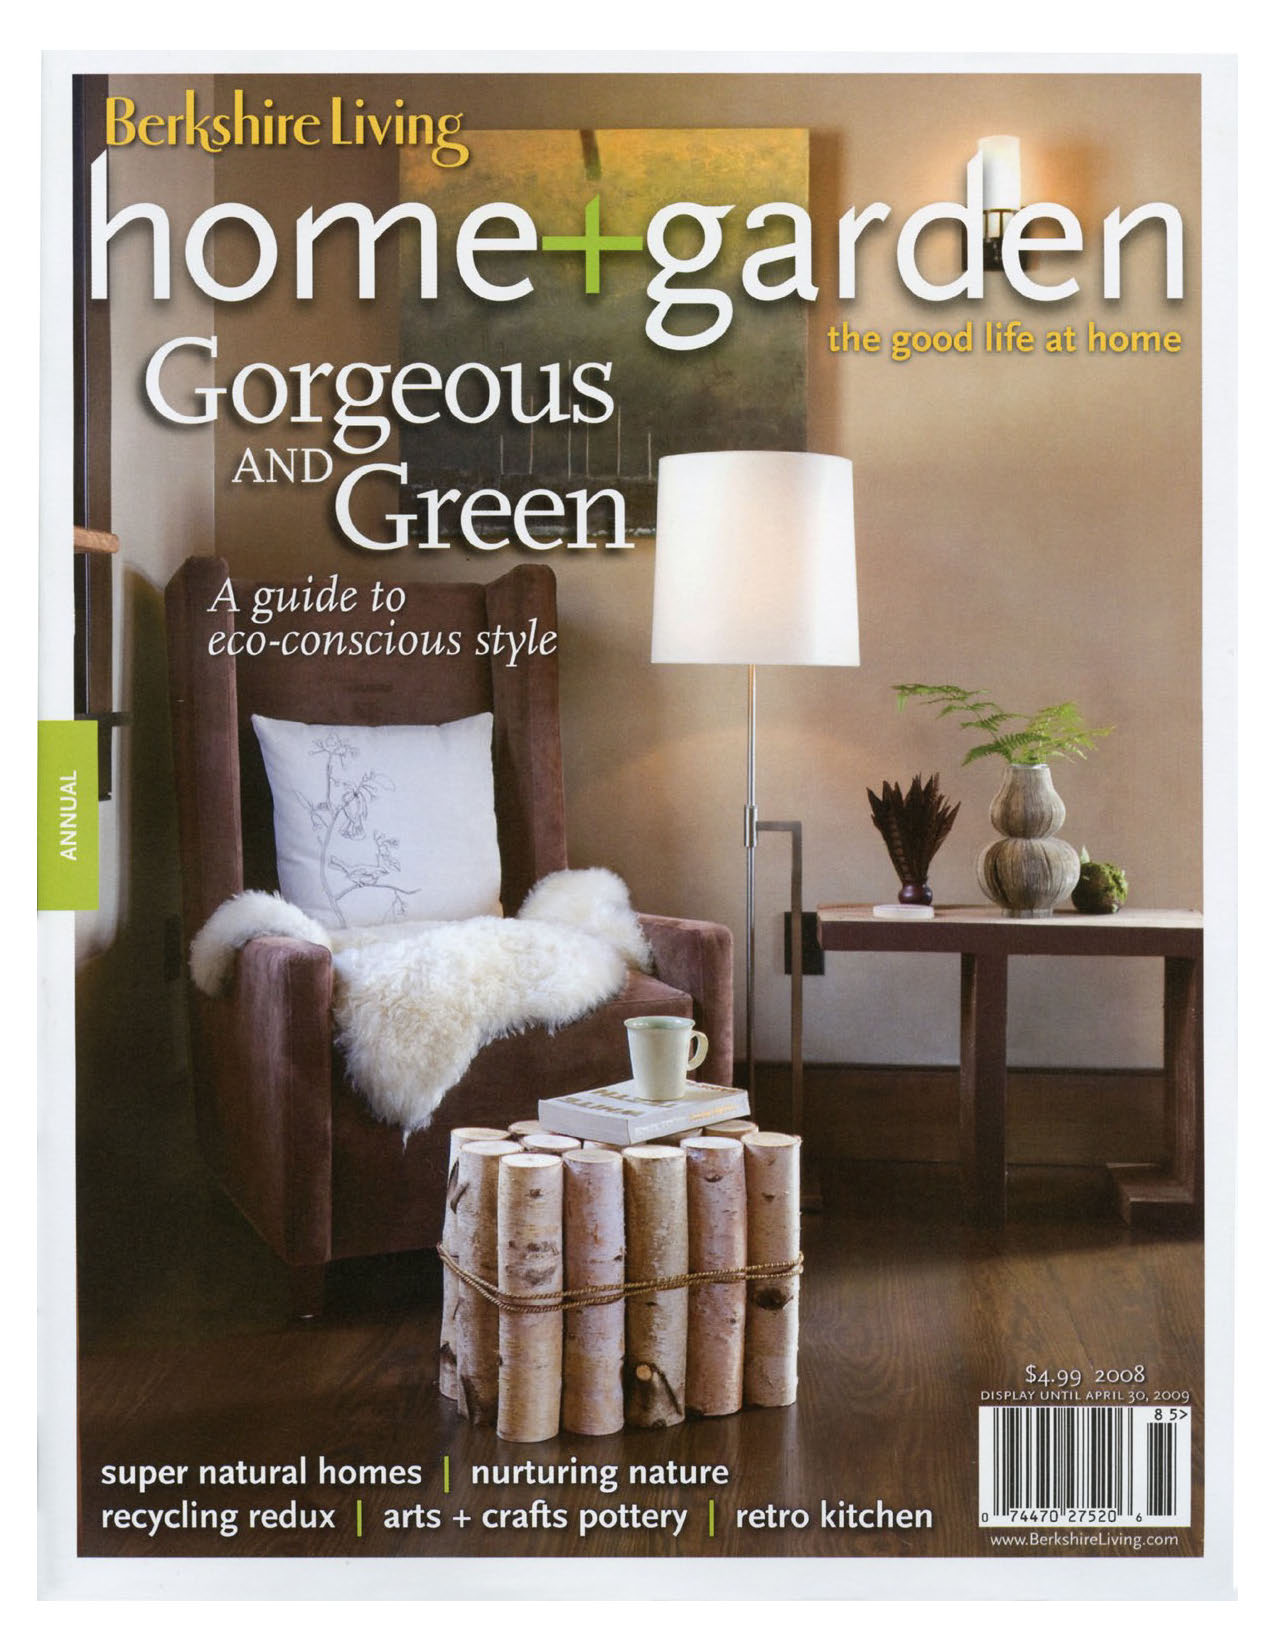 """Berkshire Living Home + Garden, May 2008: """"Green With A Twist"""""""